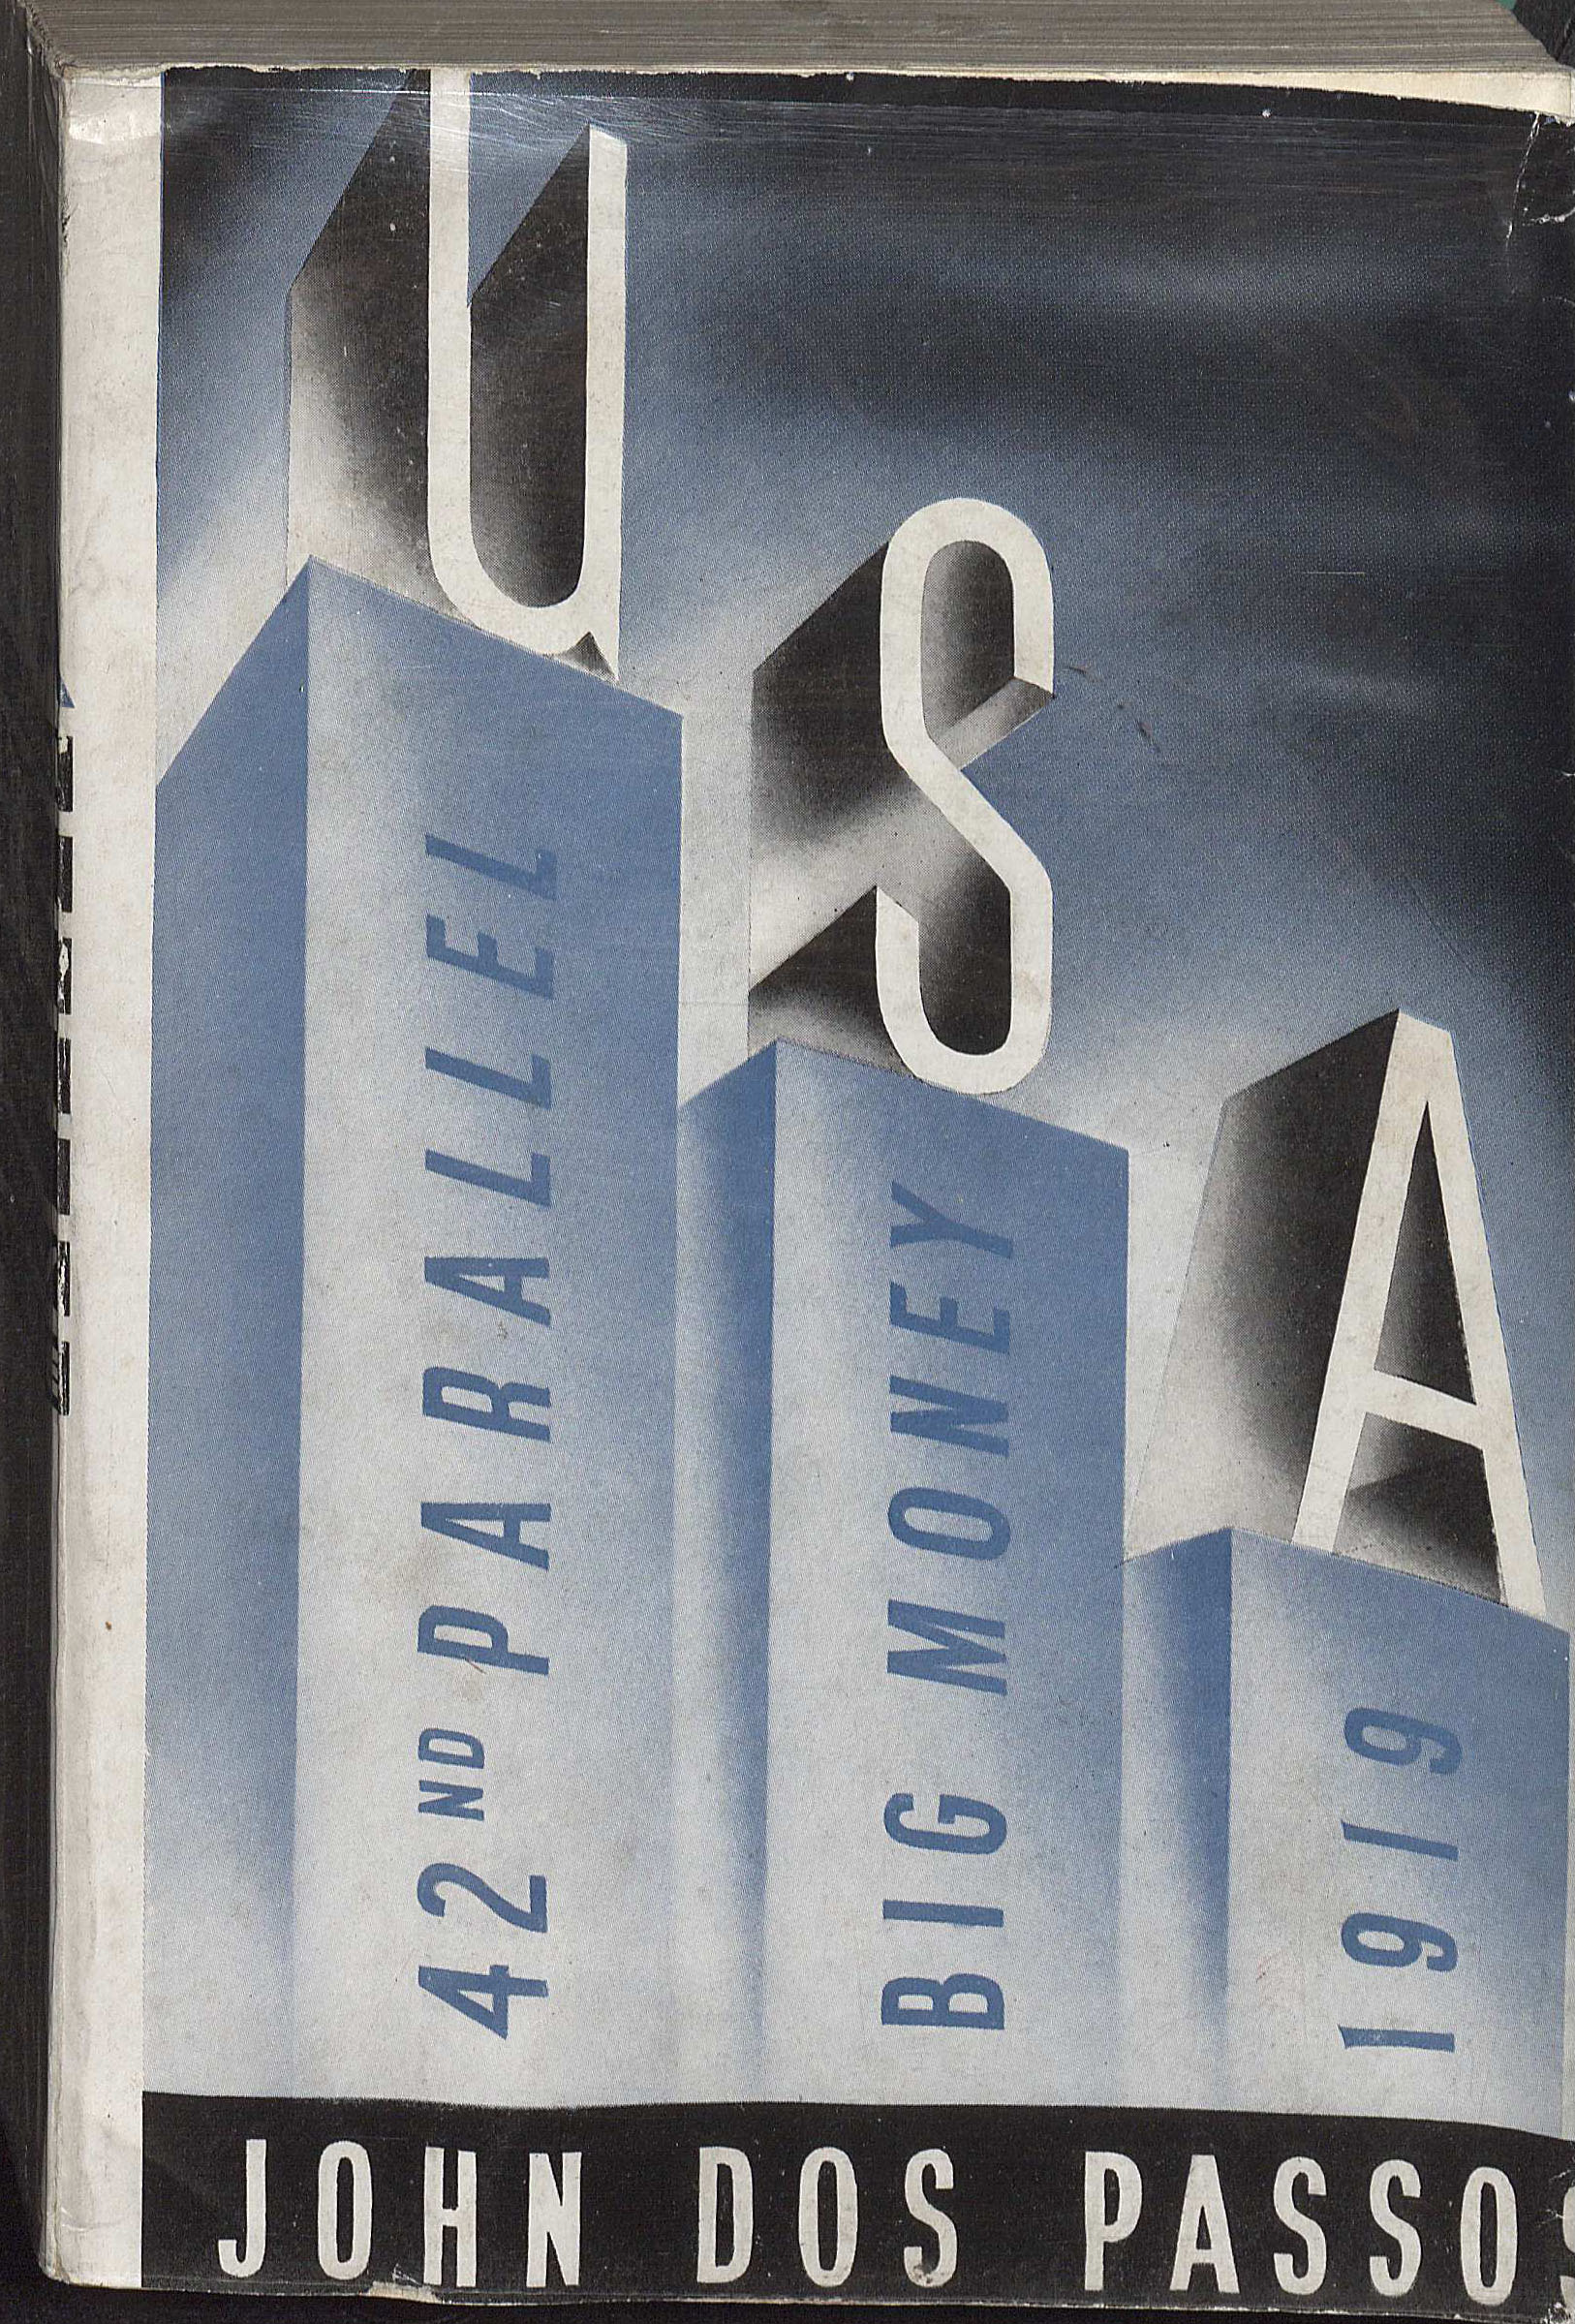 Advance copy of USA by John Dos Passos, 1938. (PS3507.O743 U5 1938. Clifton Waller Barrett Library of American Literature. Image by Petrina Jackson)